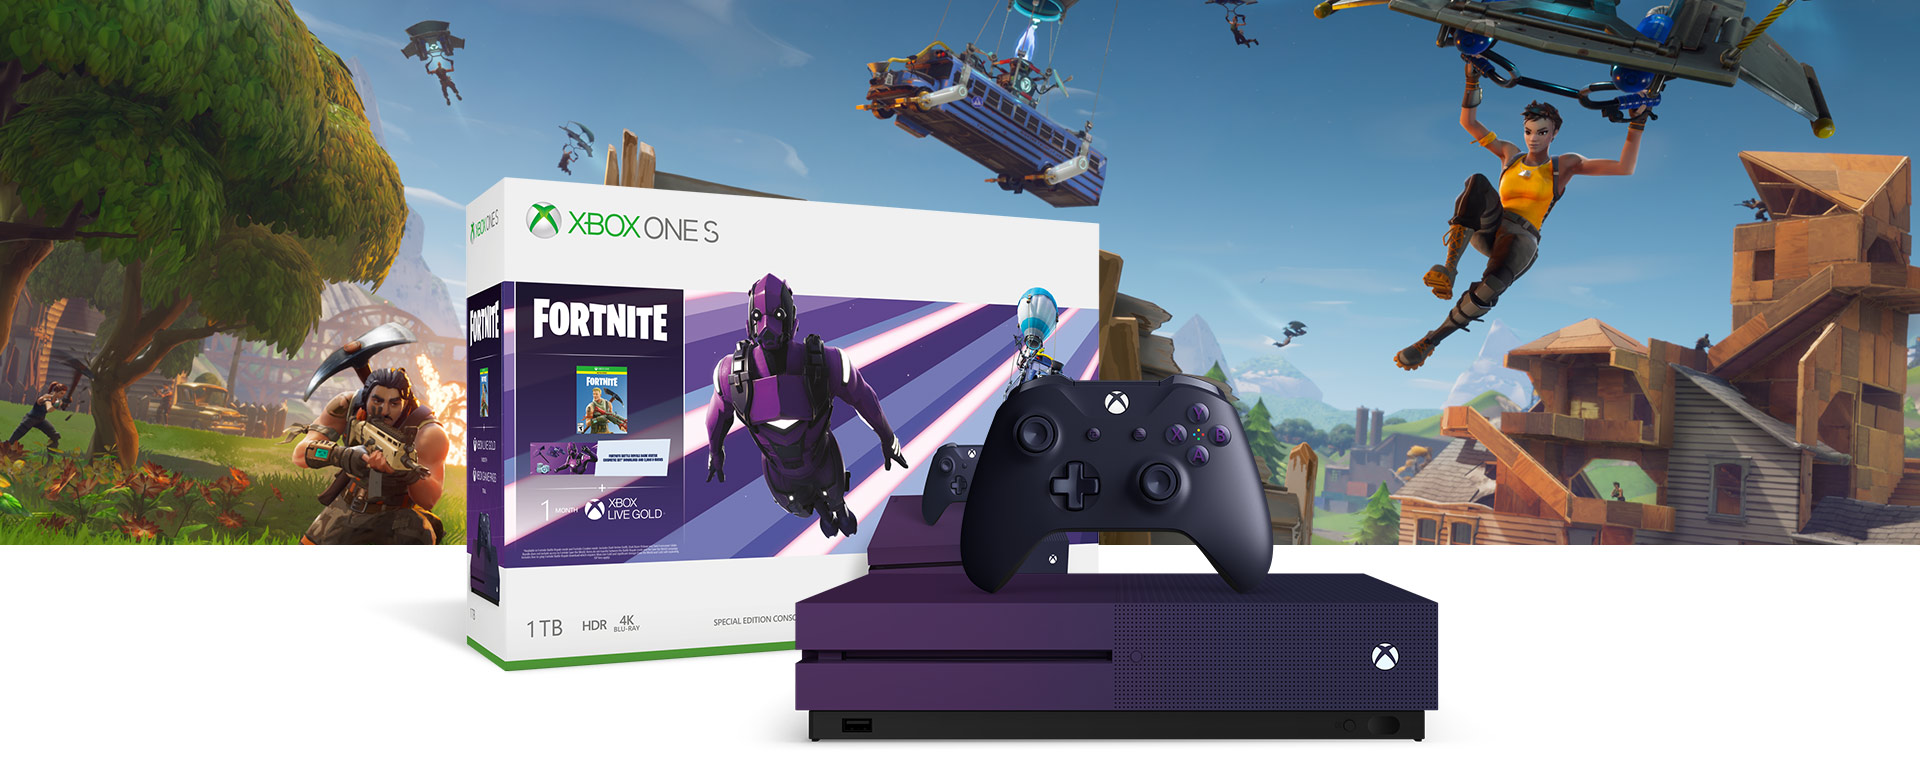 Gradient purple Xbox One S console in front of a hardware bundle box featuring Fortnite Battle Royale art